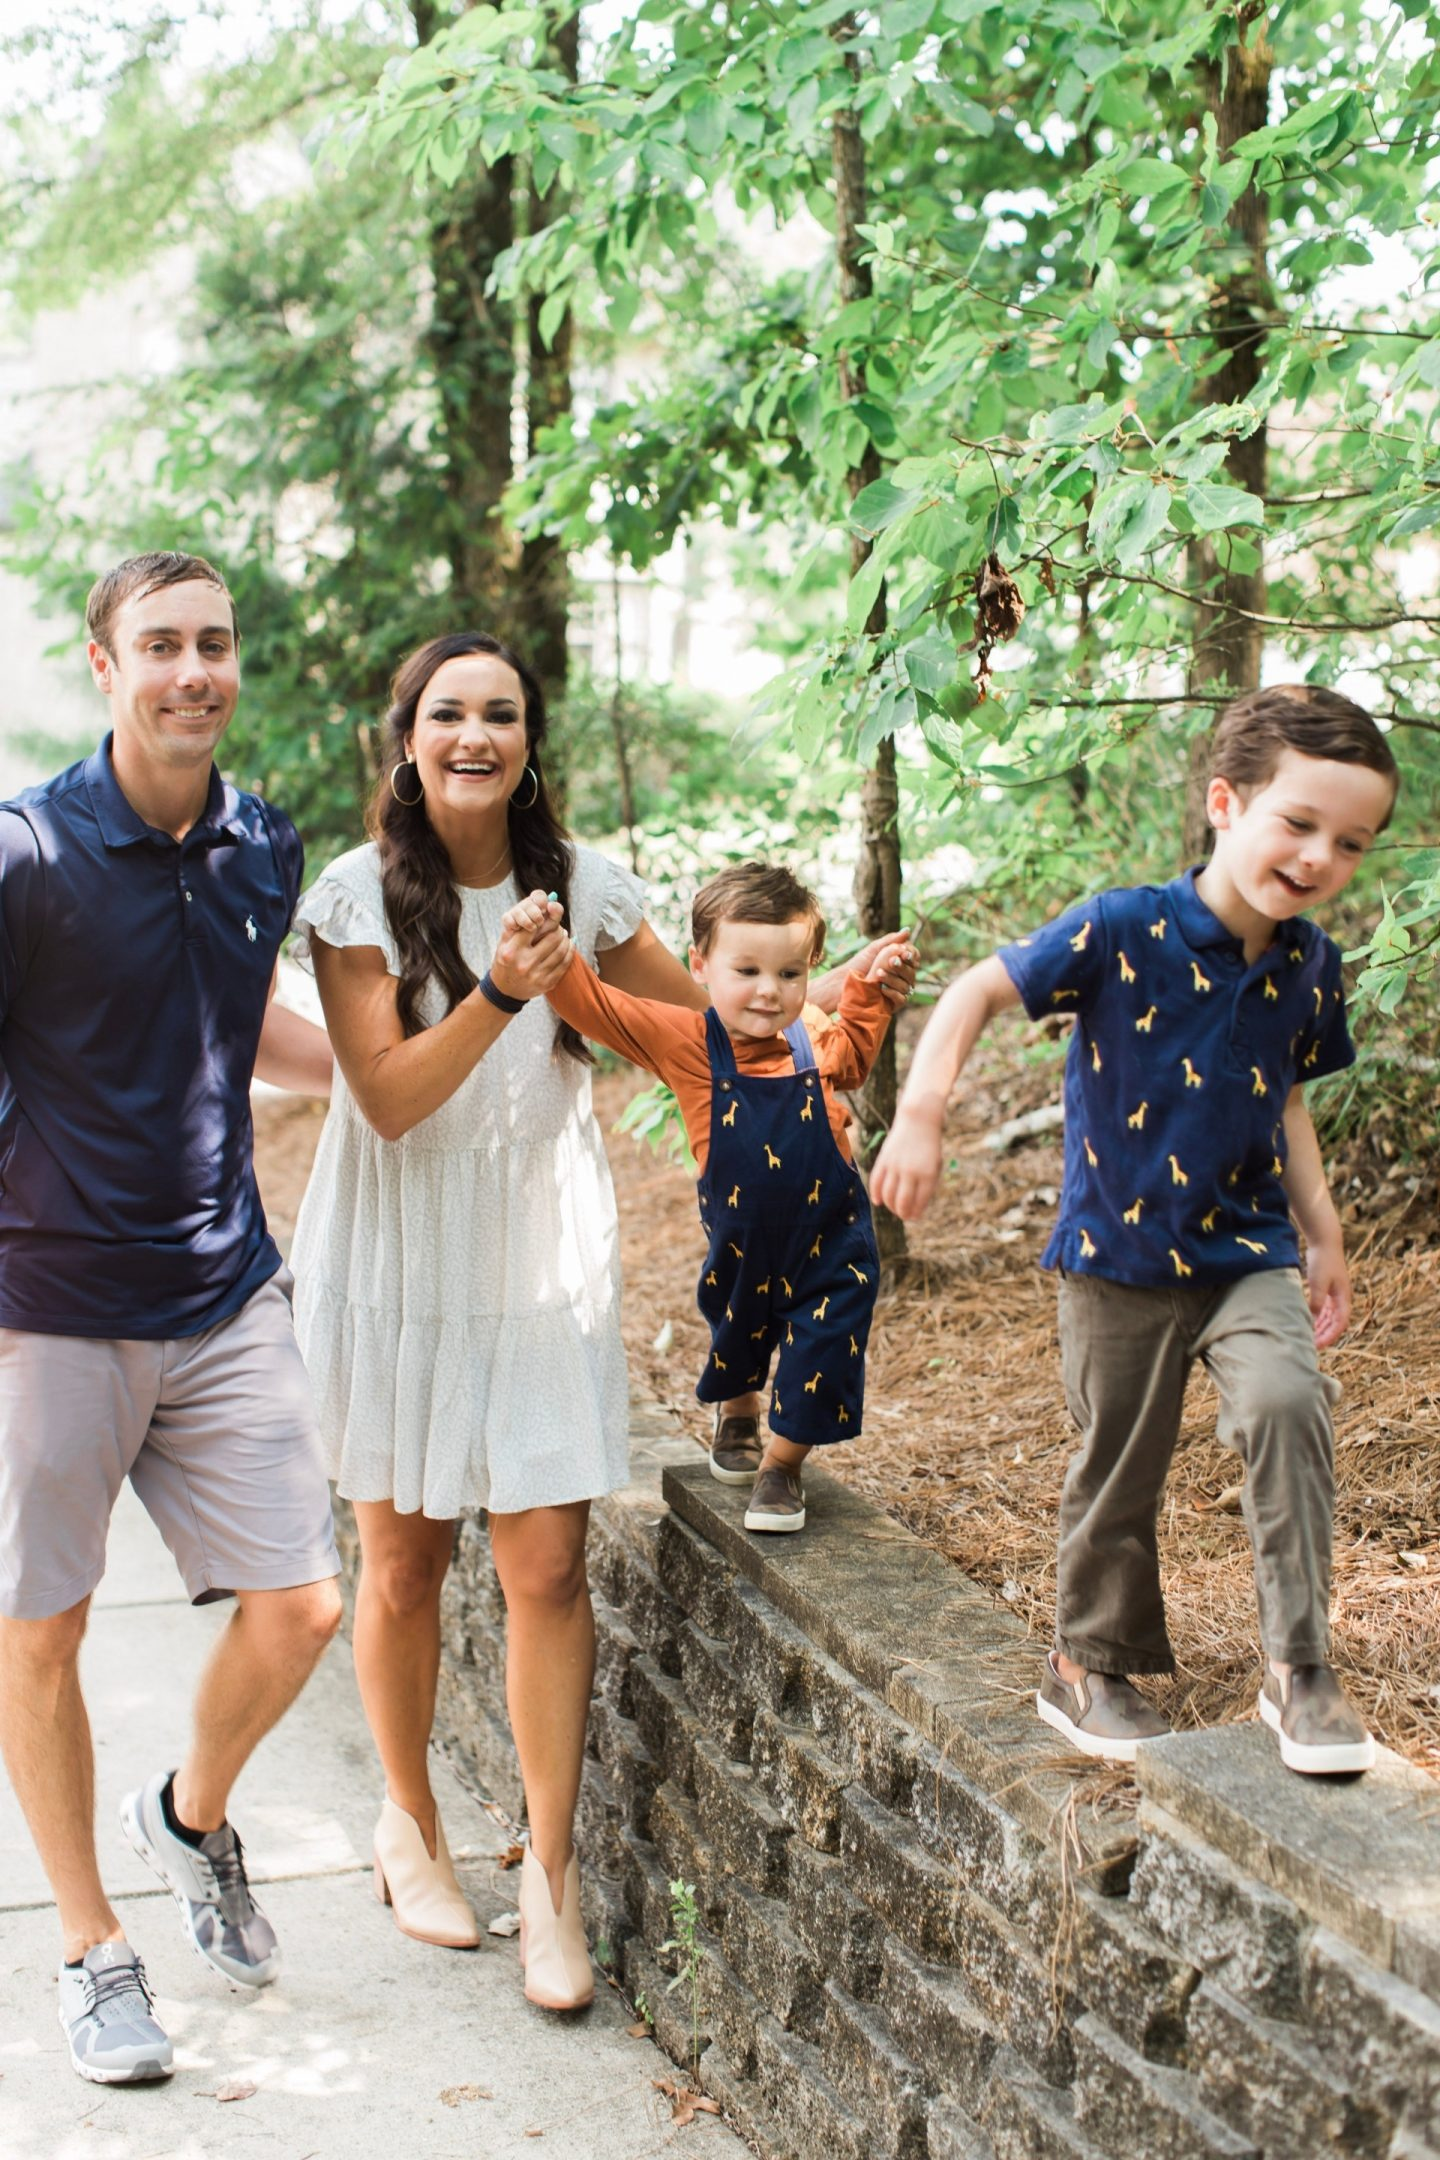 Fall Family Photo Outfit Ideas For Your Entire Family by Alabama Family + Lifestyle blogger, Heather Brown // My Life Well Loved